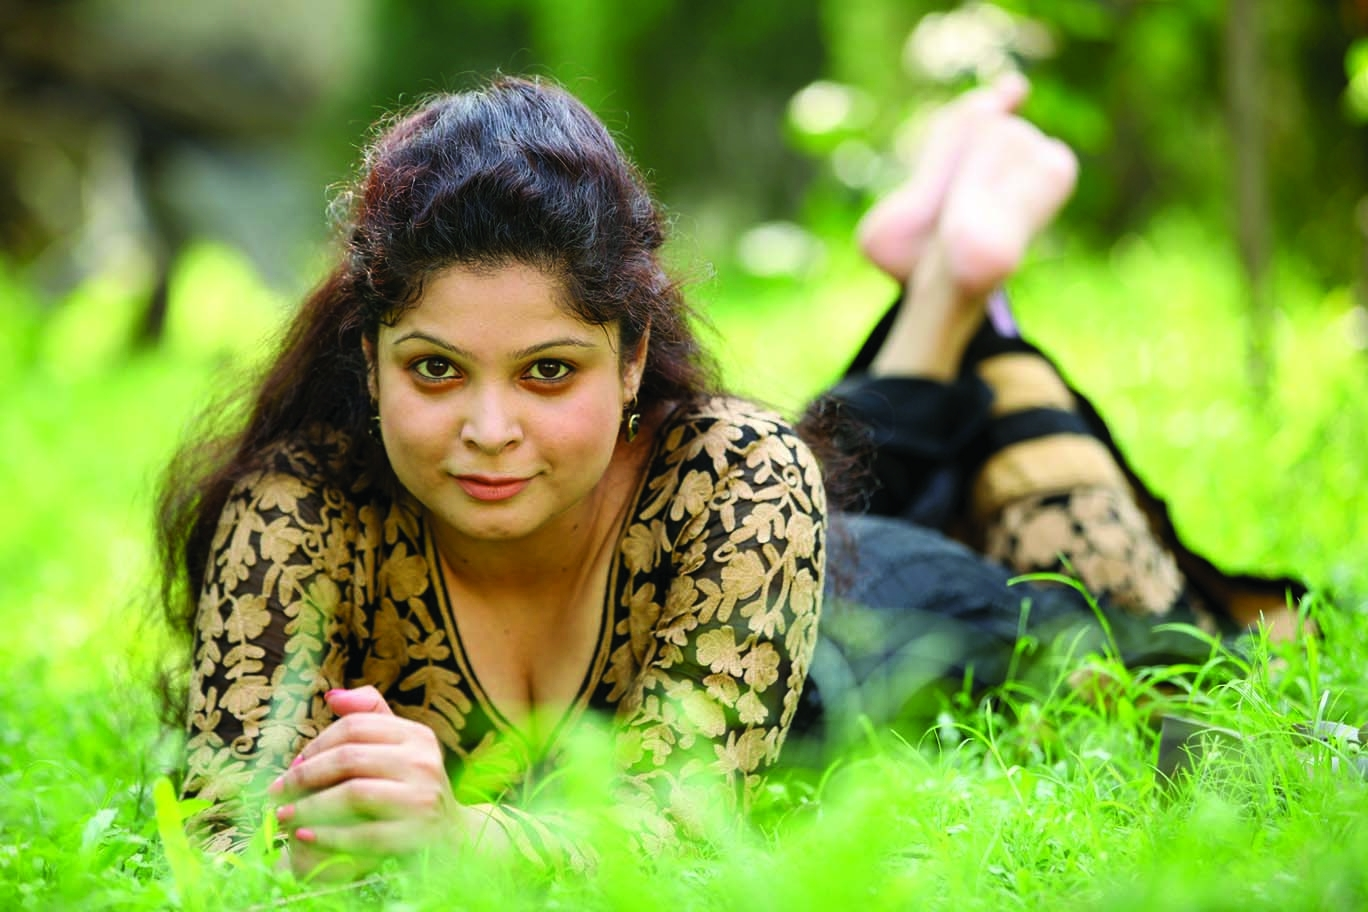 Rimu now busy with acting in TV play, movie